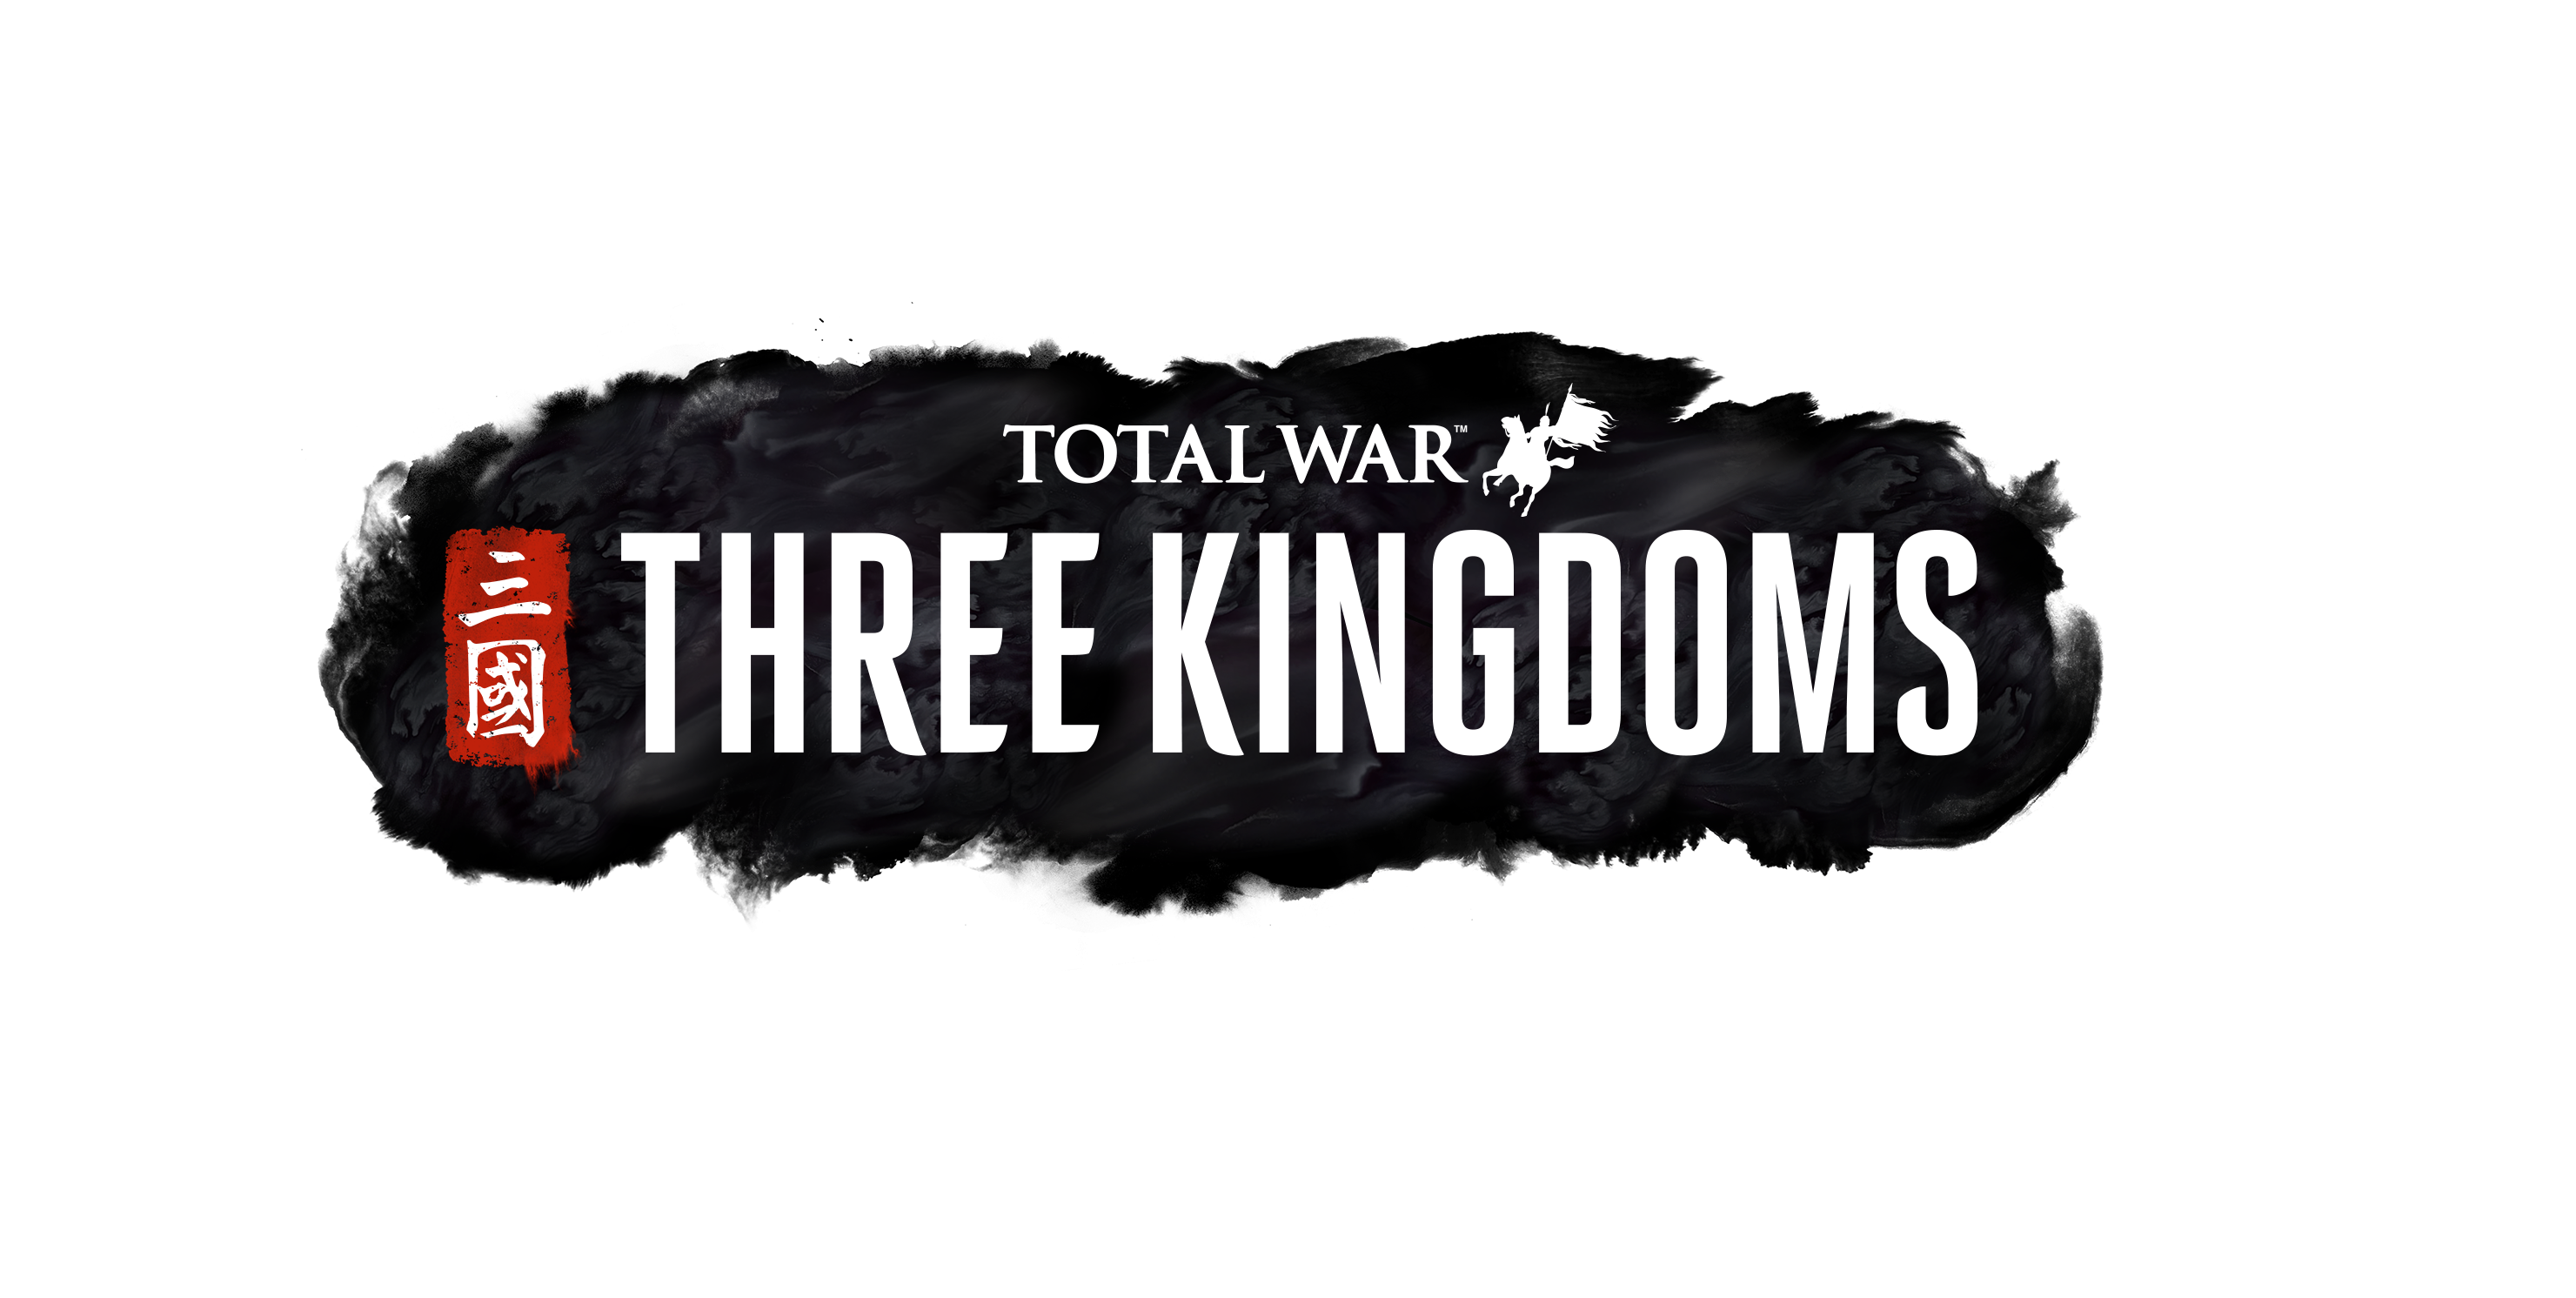 Total War 3k logo